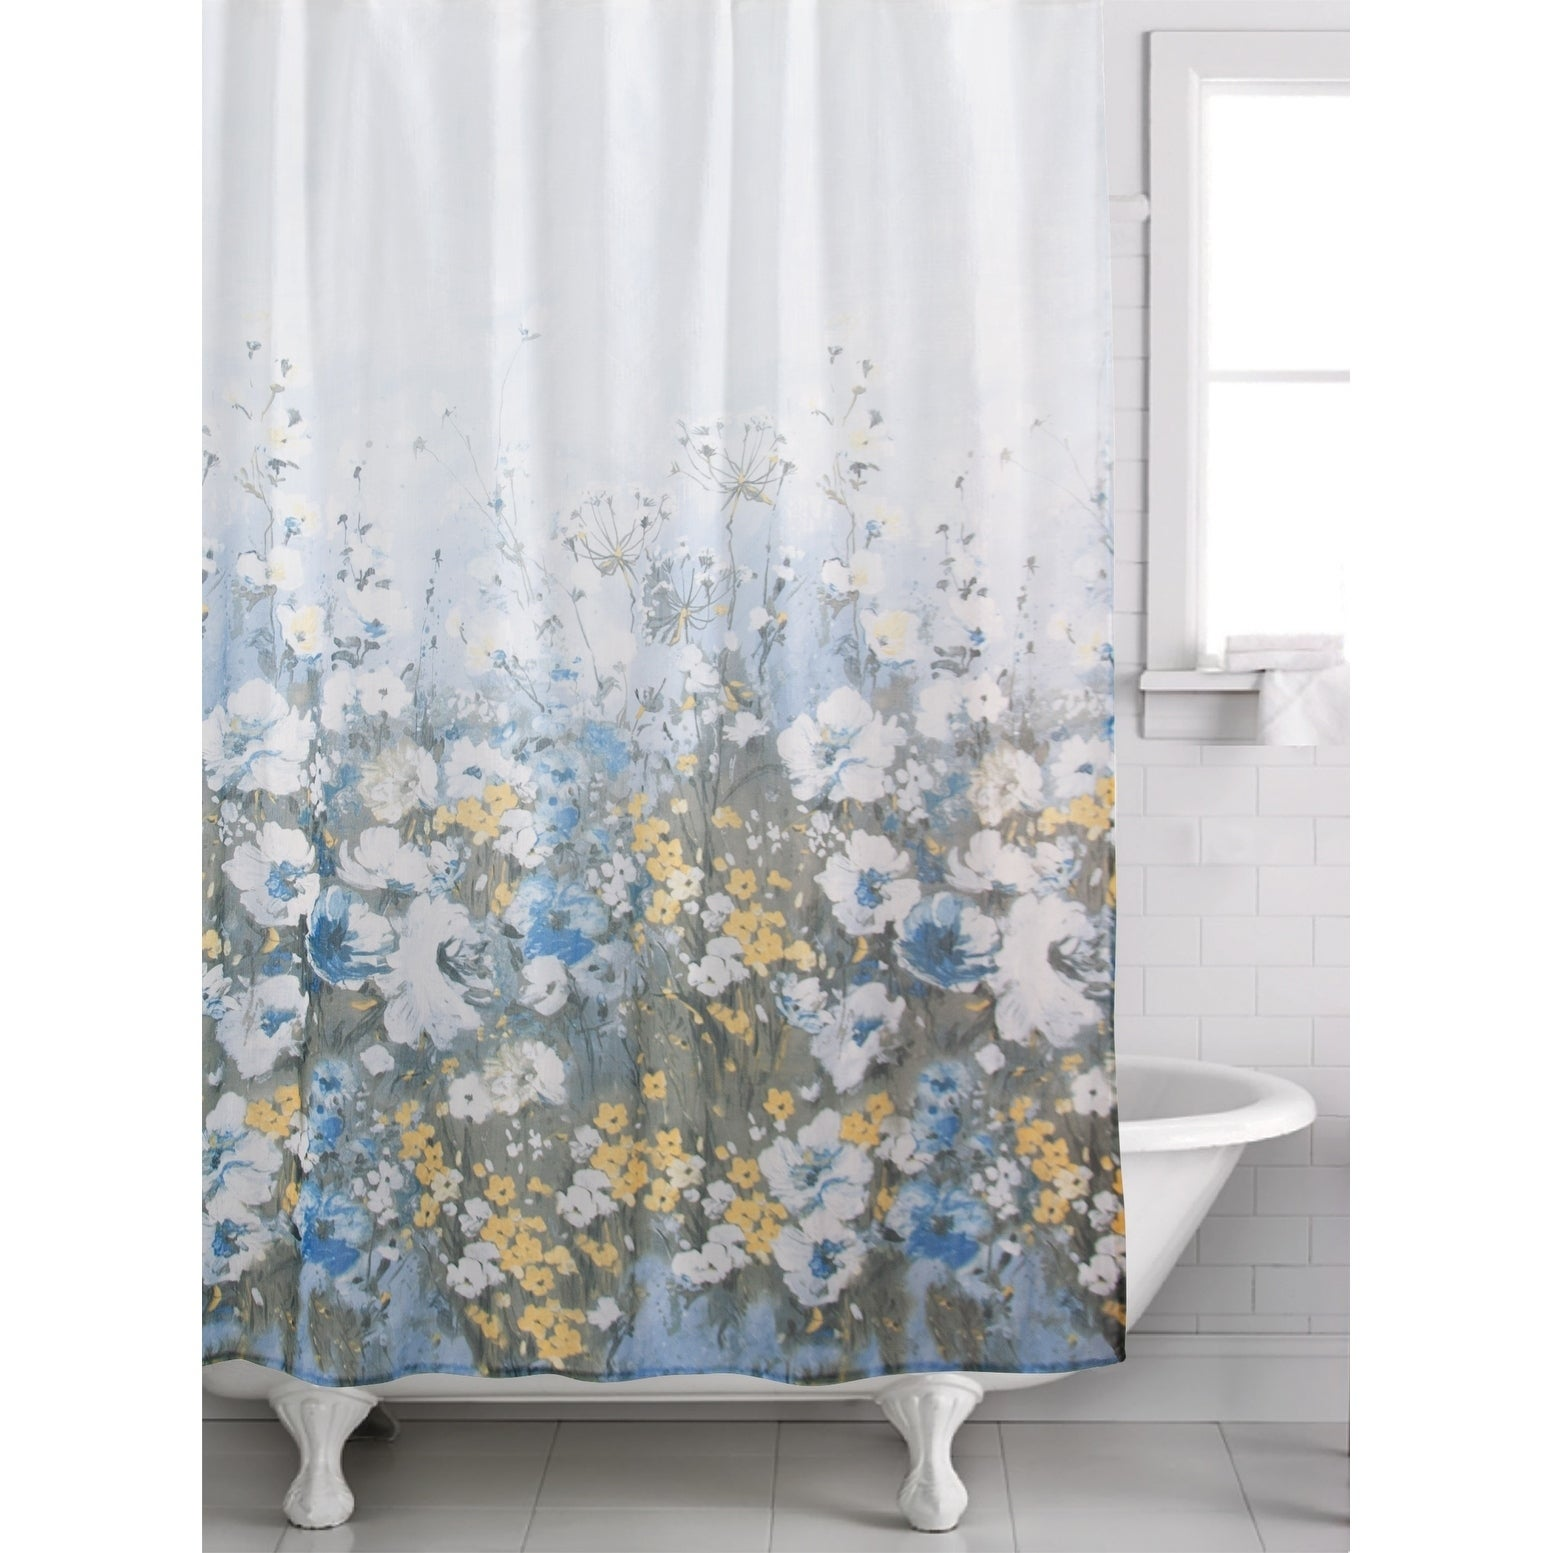 Colorful Butterflys Print Fabric Shower Curtain 70x72 New In